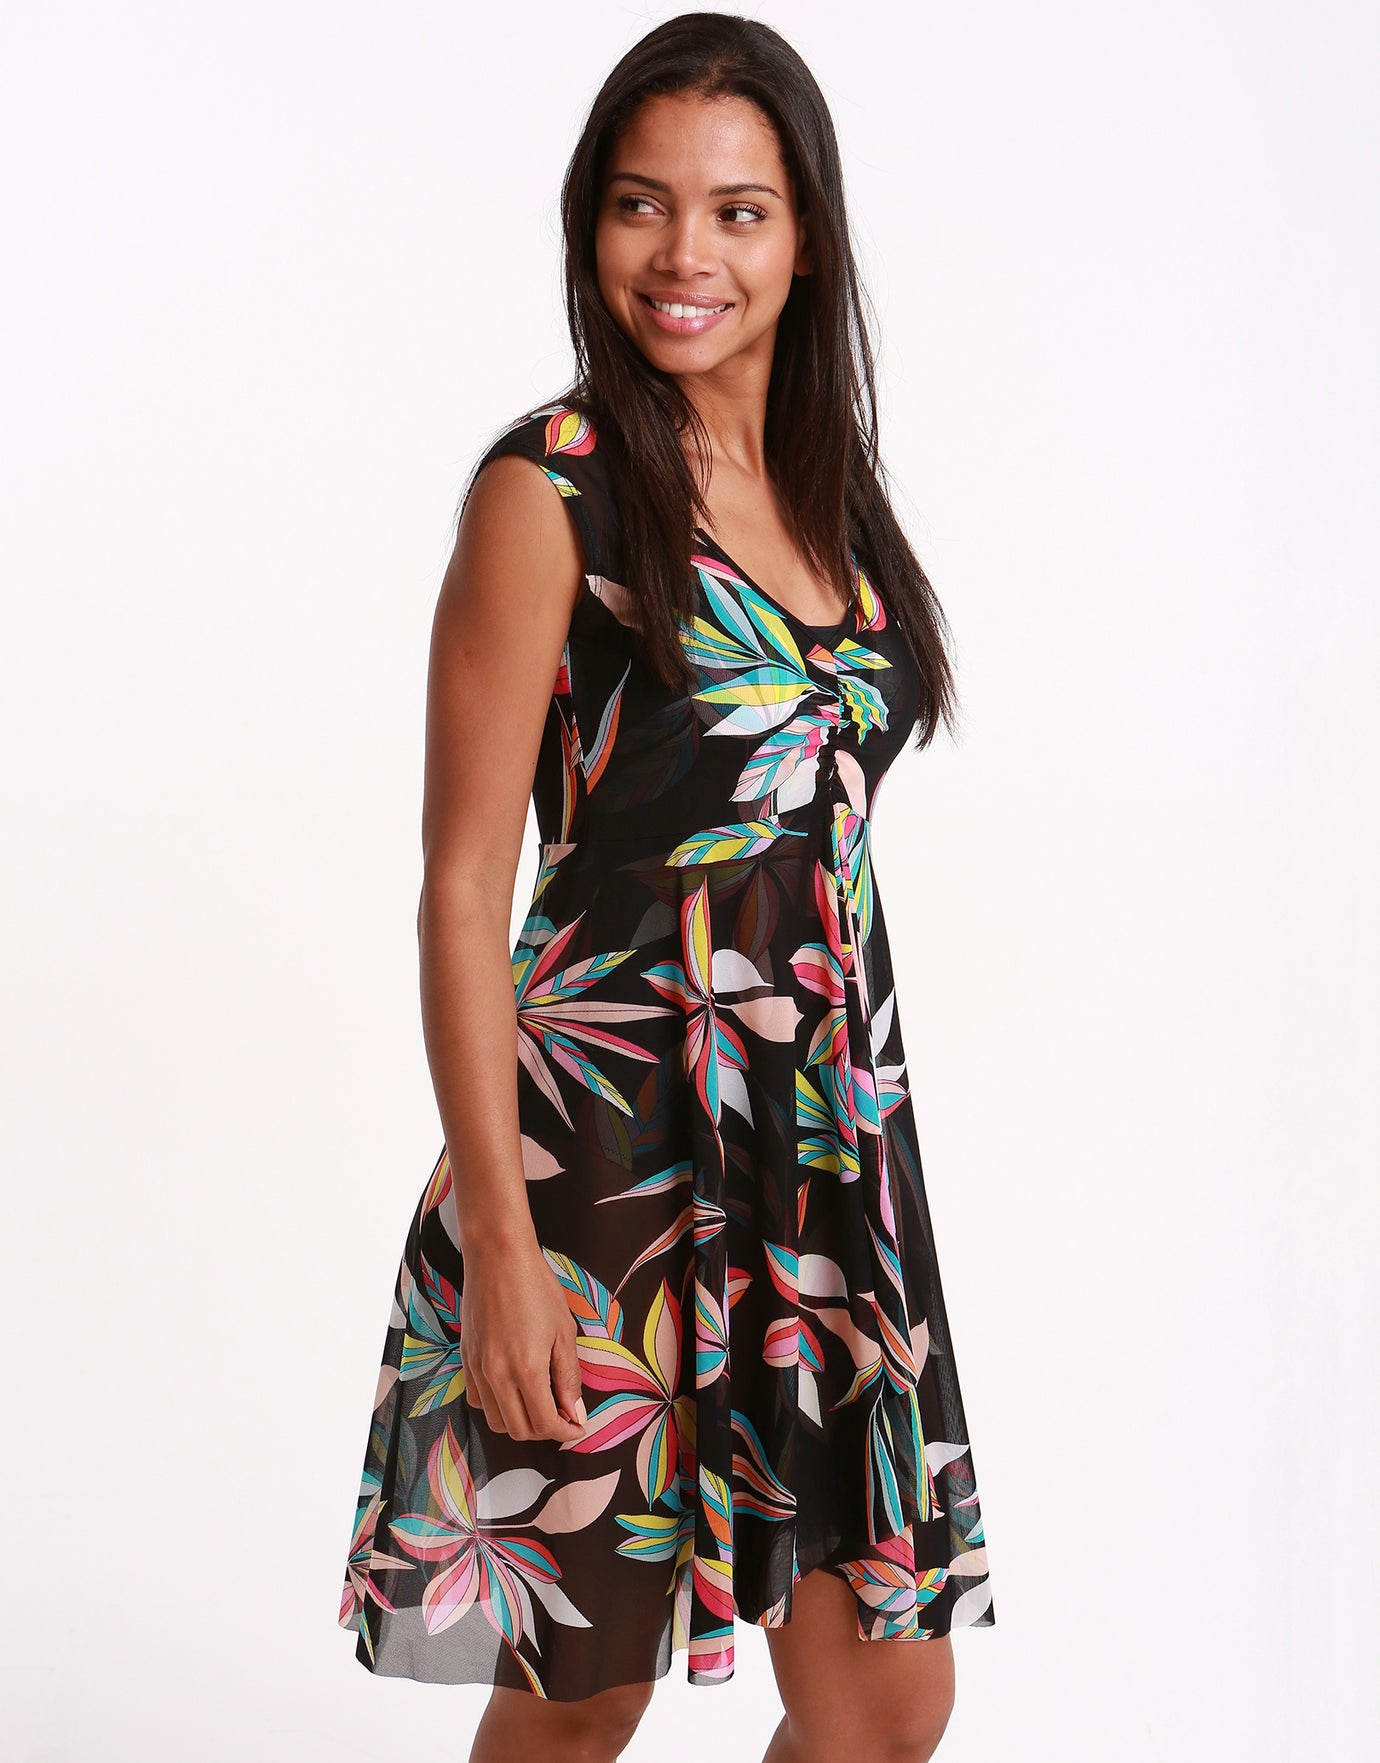 Gottex Profile Paparazzi Mesh Dress - Multi